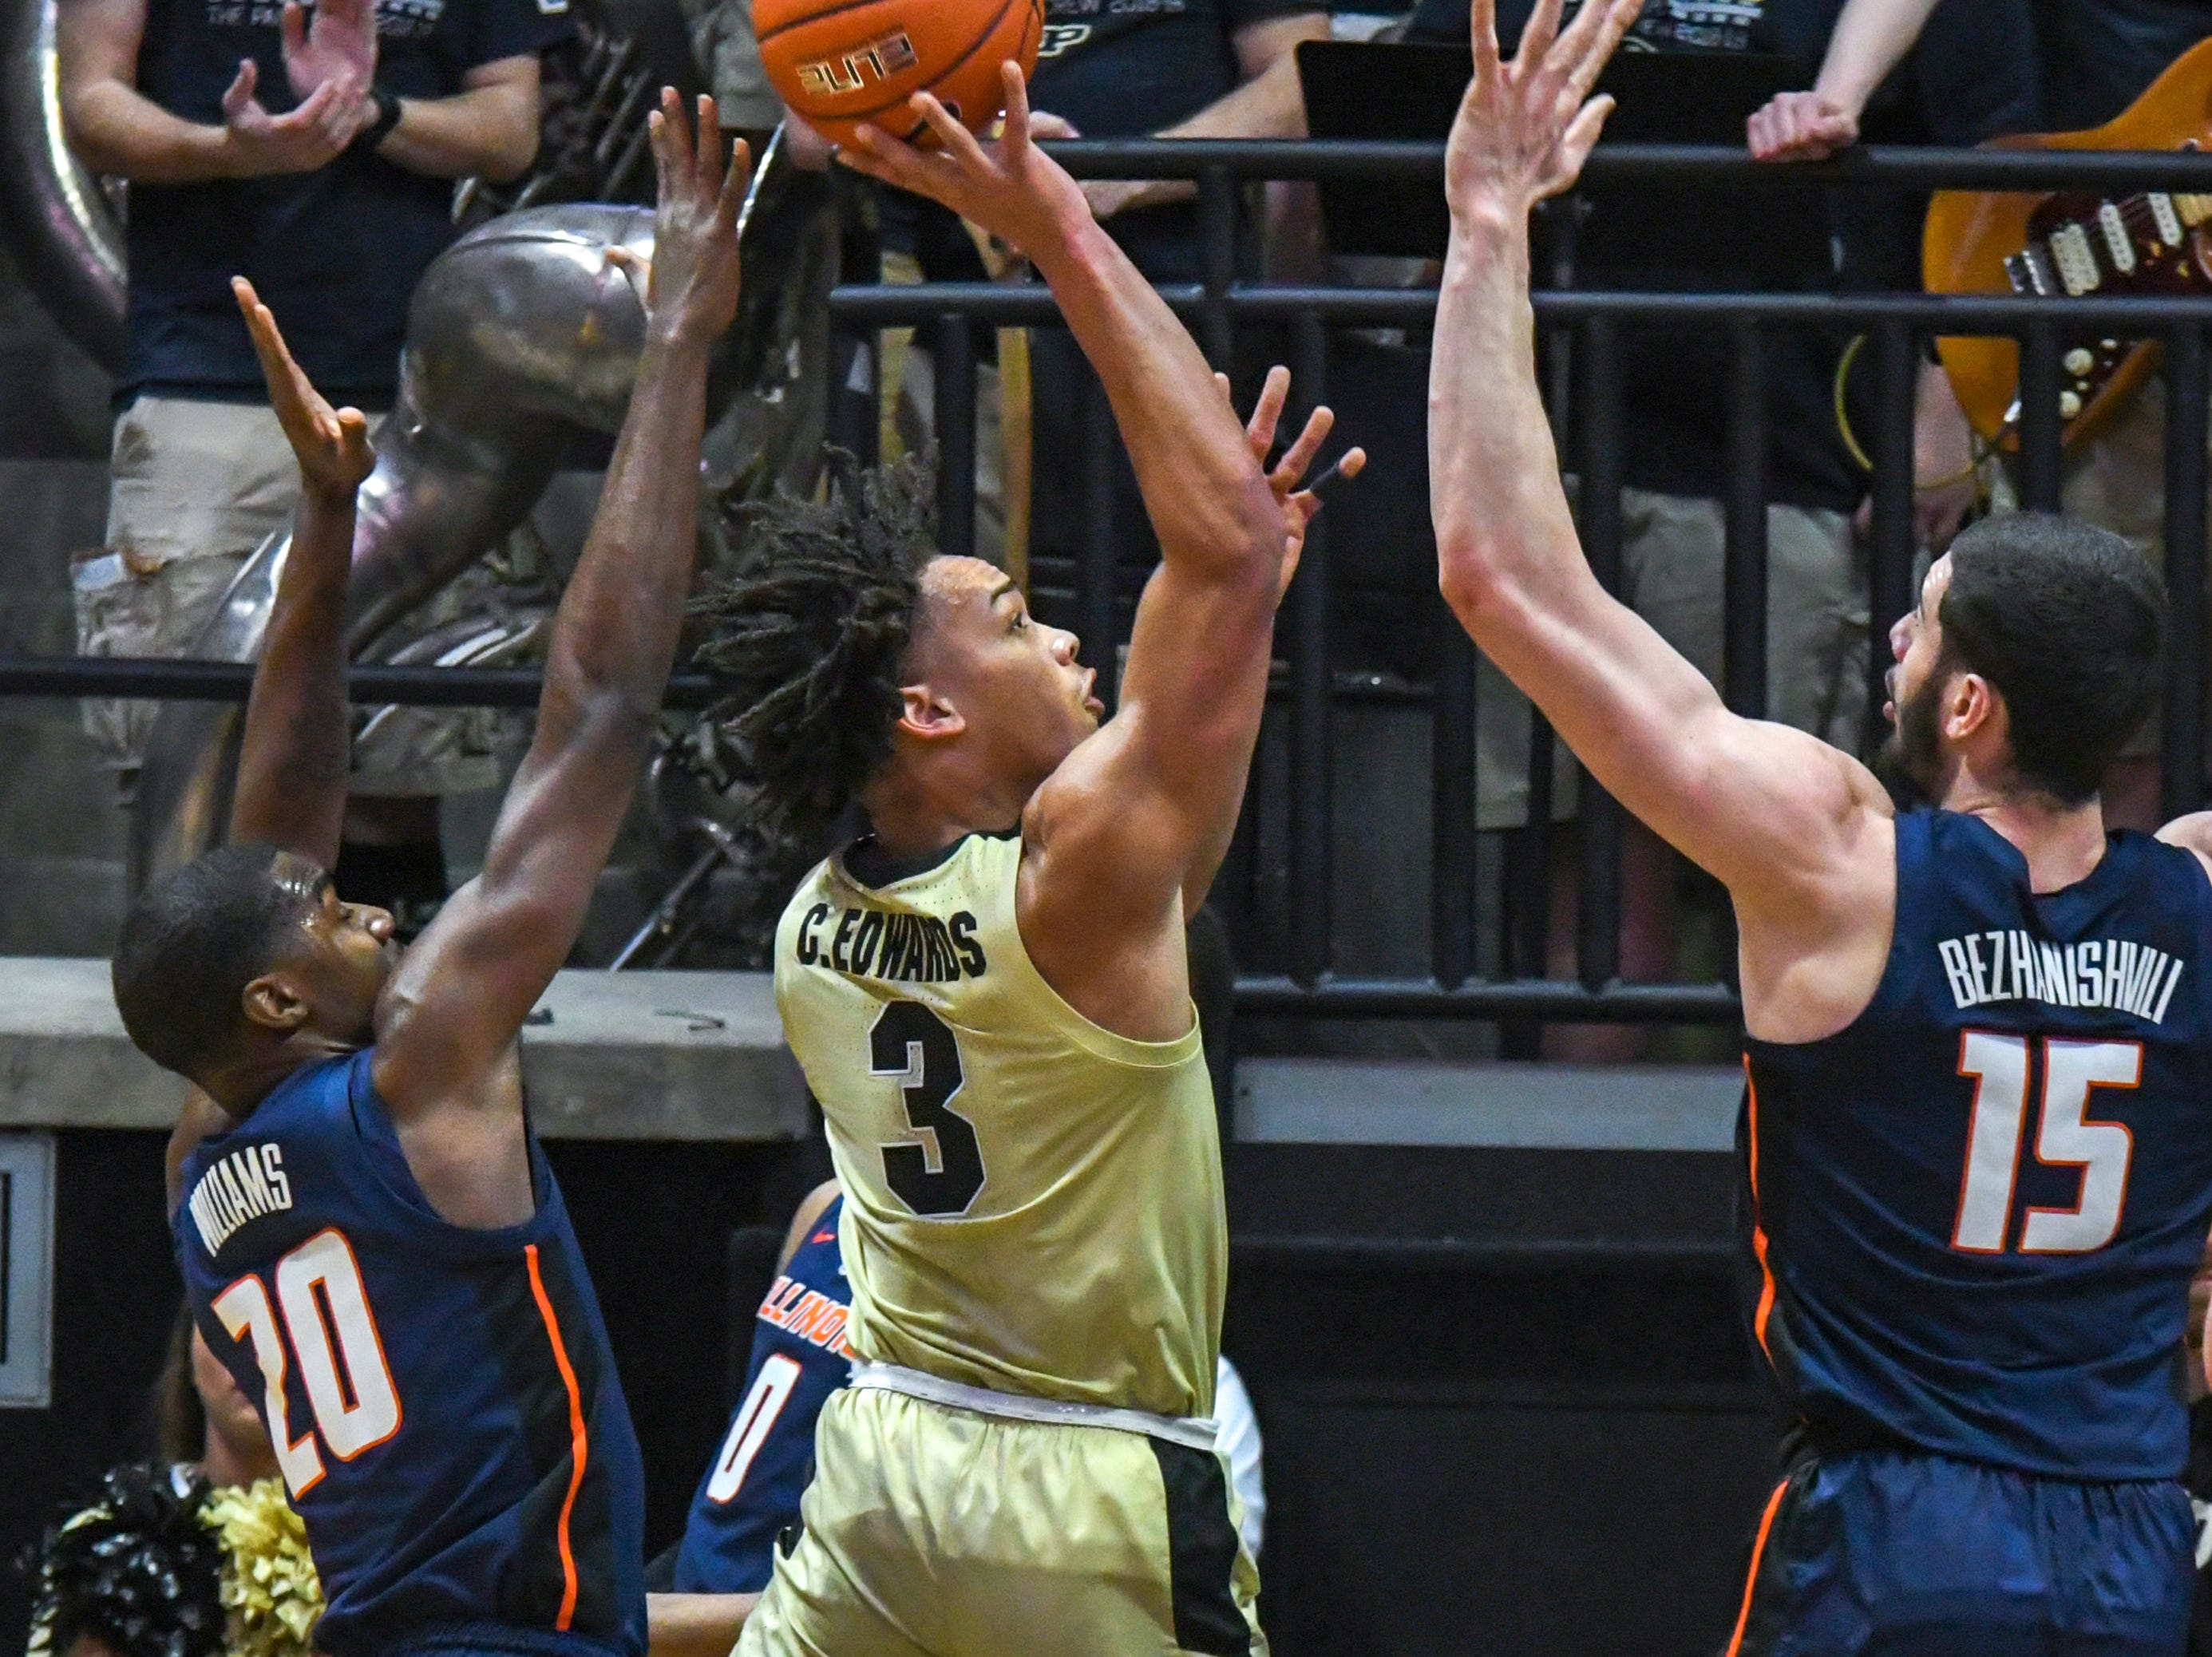 By Frank Oliver for the Journal and Courier --Action and reaction in Purdue's 73-56 win over Illinois on February 27, 2019 in West Lafayette.